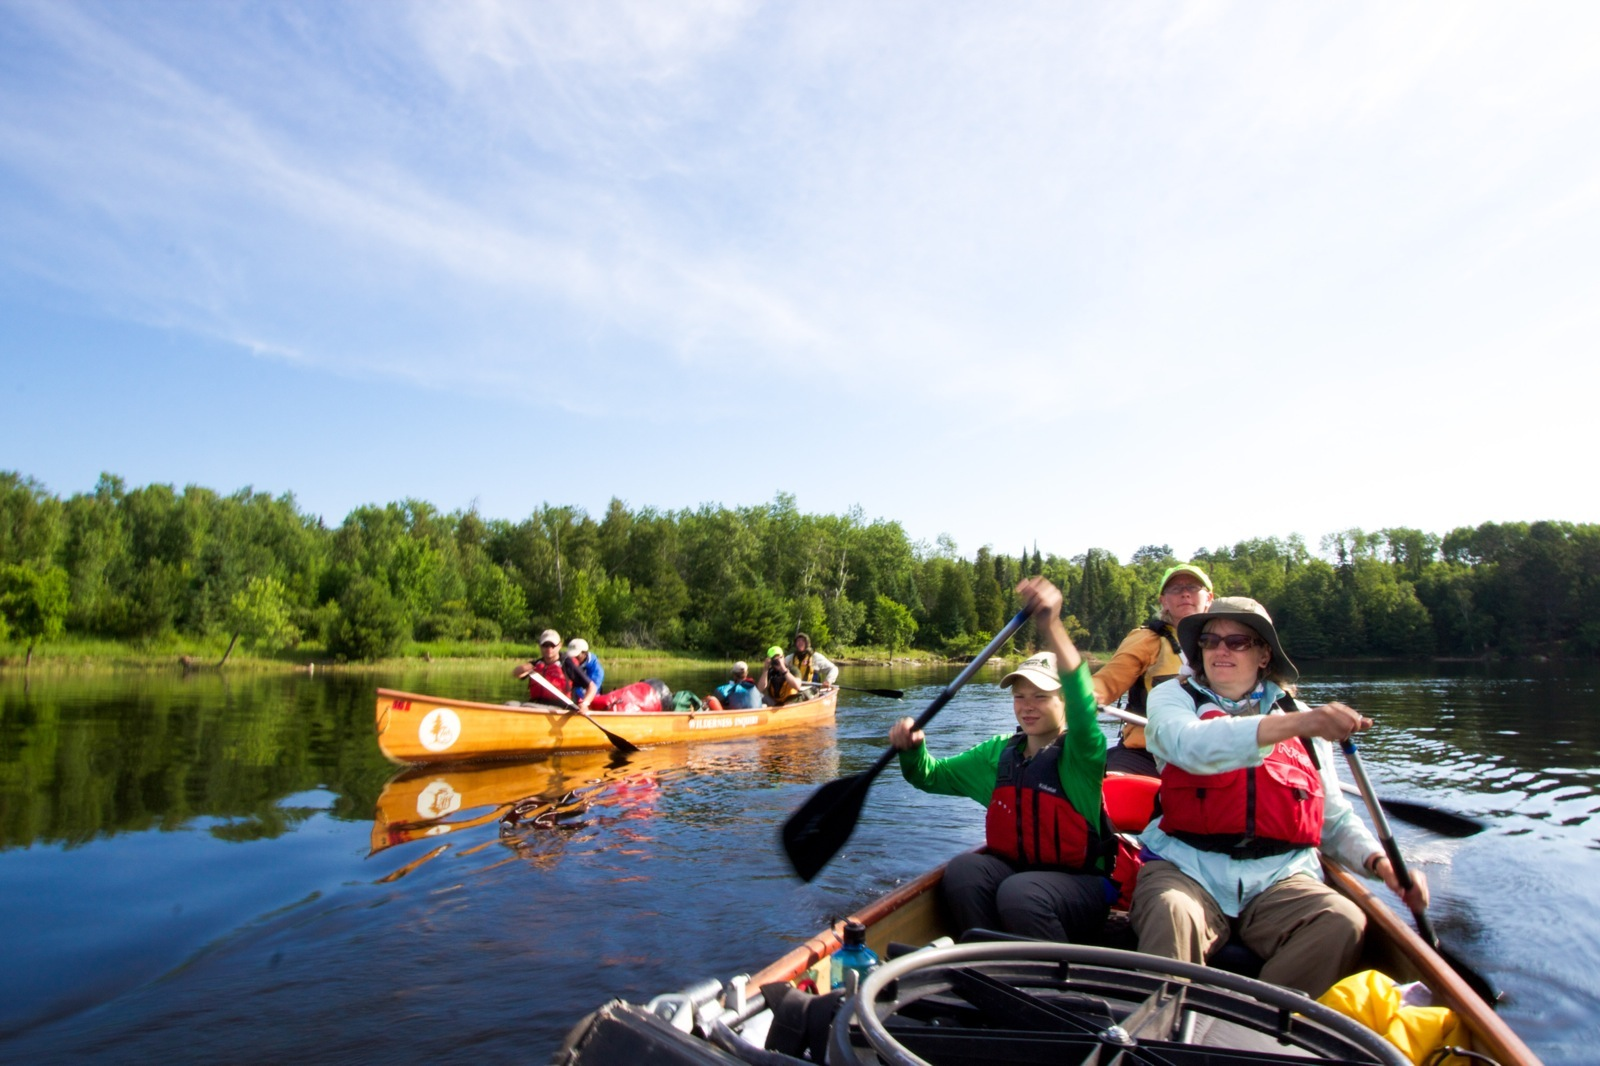 Two Voyageur canoes loaded up with gear and paddlers set out across the lake on a sunny day.